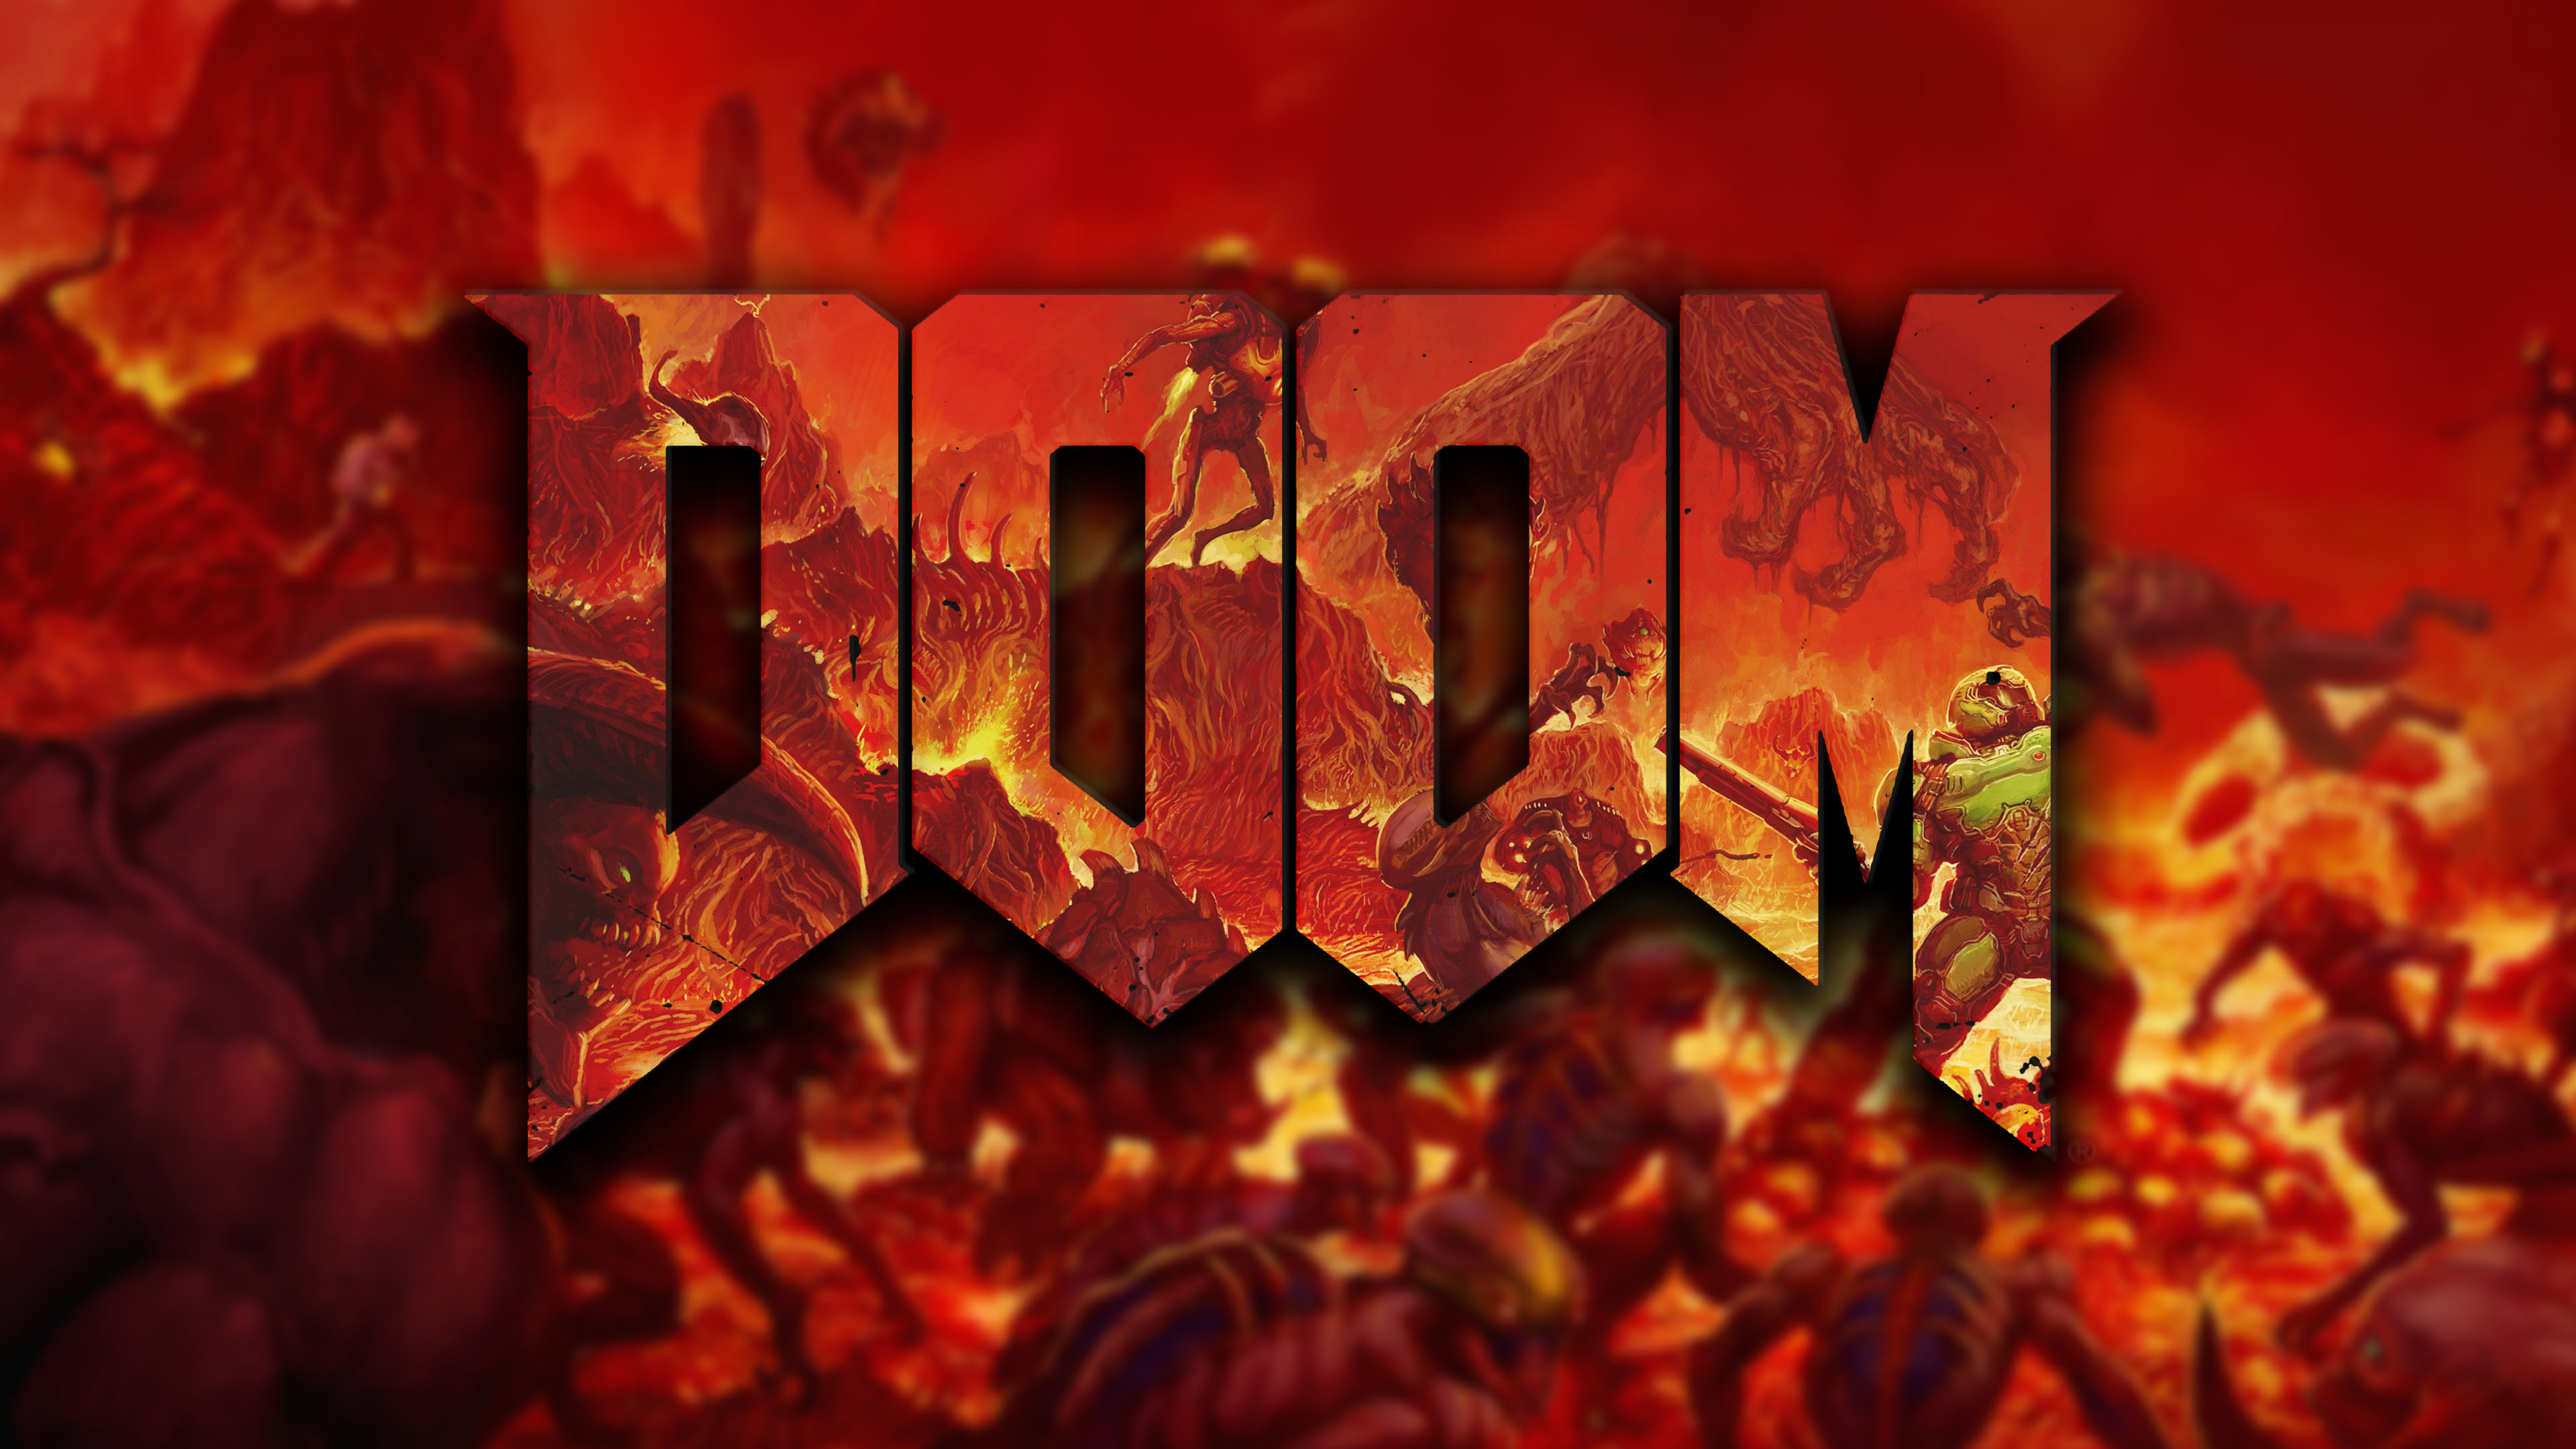 I Made Wallpaper Some Of You might like [DOOM]